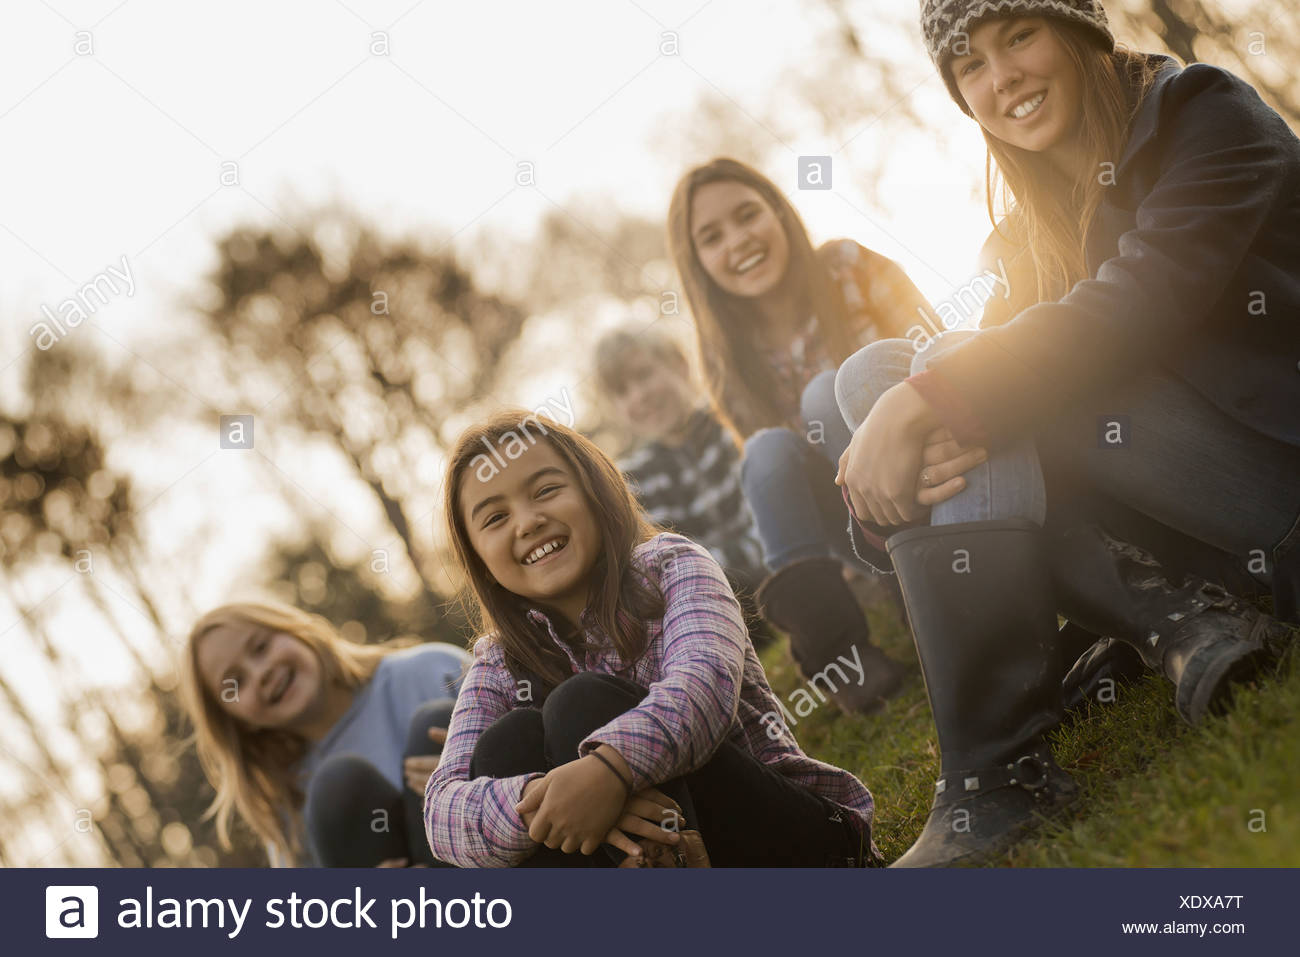 A large group of young children girls and boys outdoors on a winter day on an organic farm - Stock Image